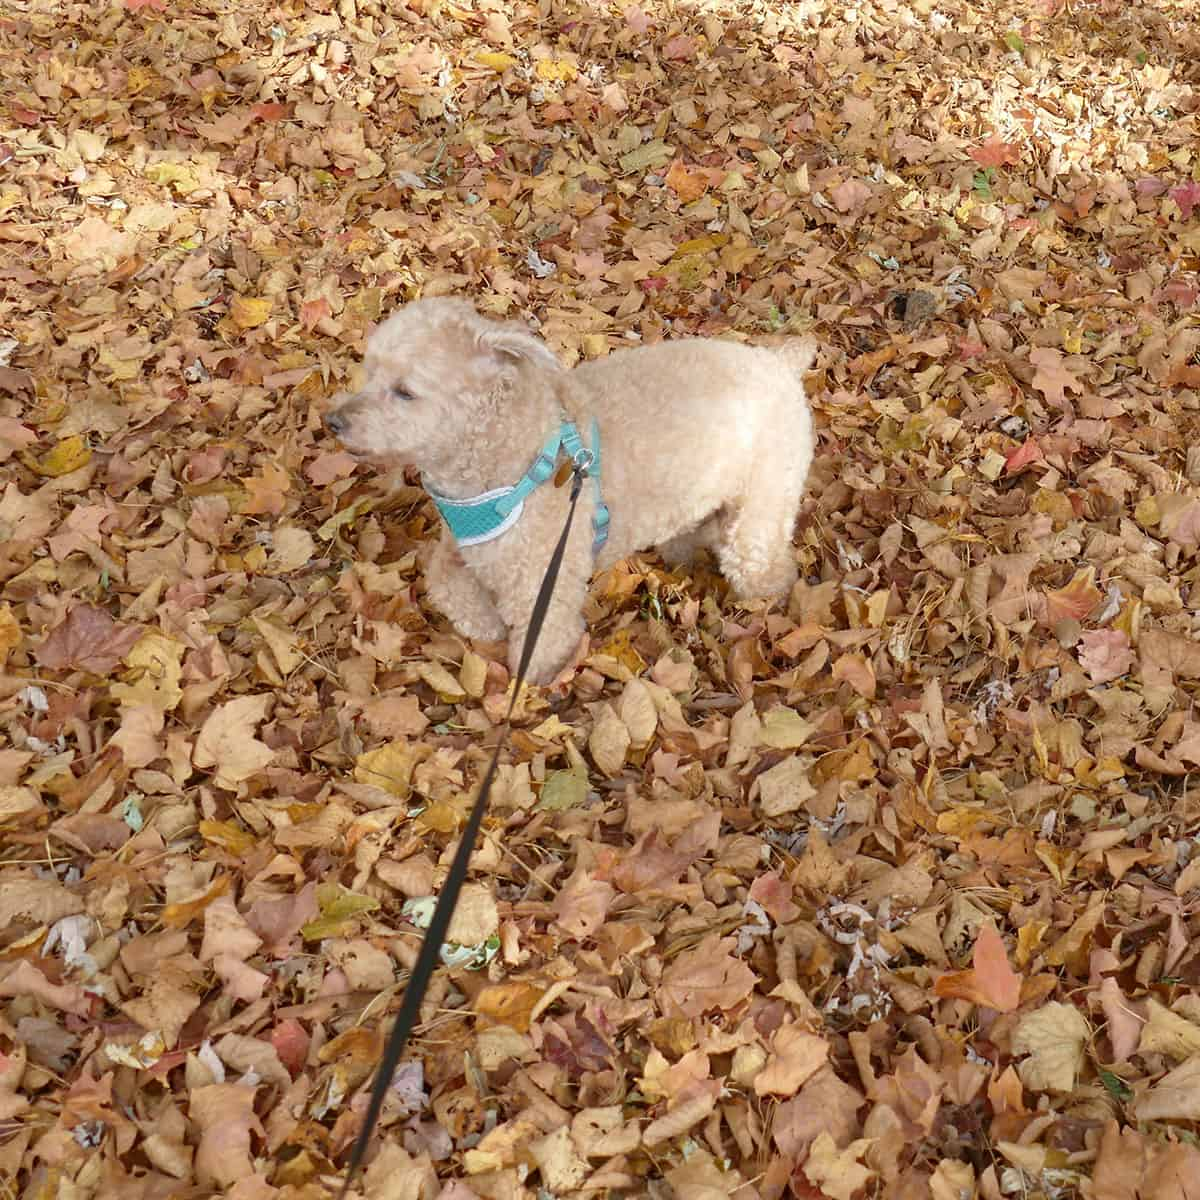 Mr. Mickey in the leaves